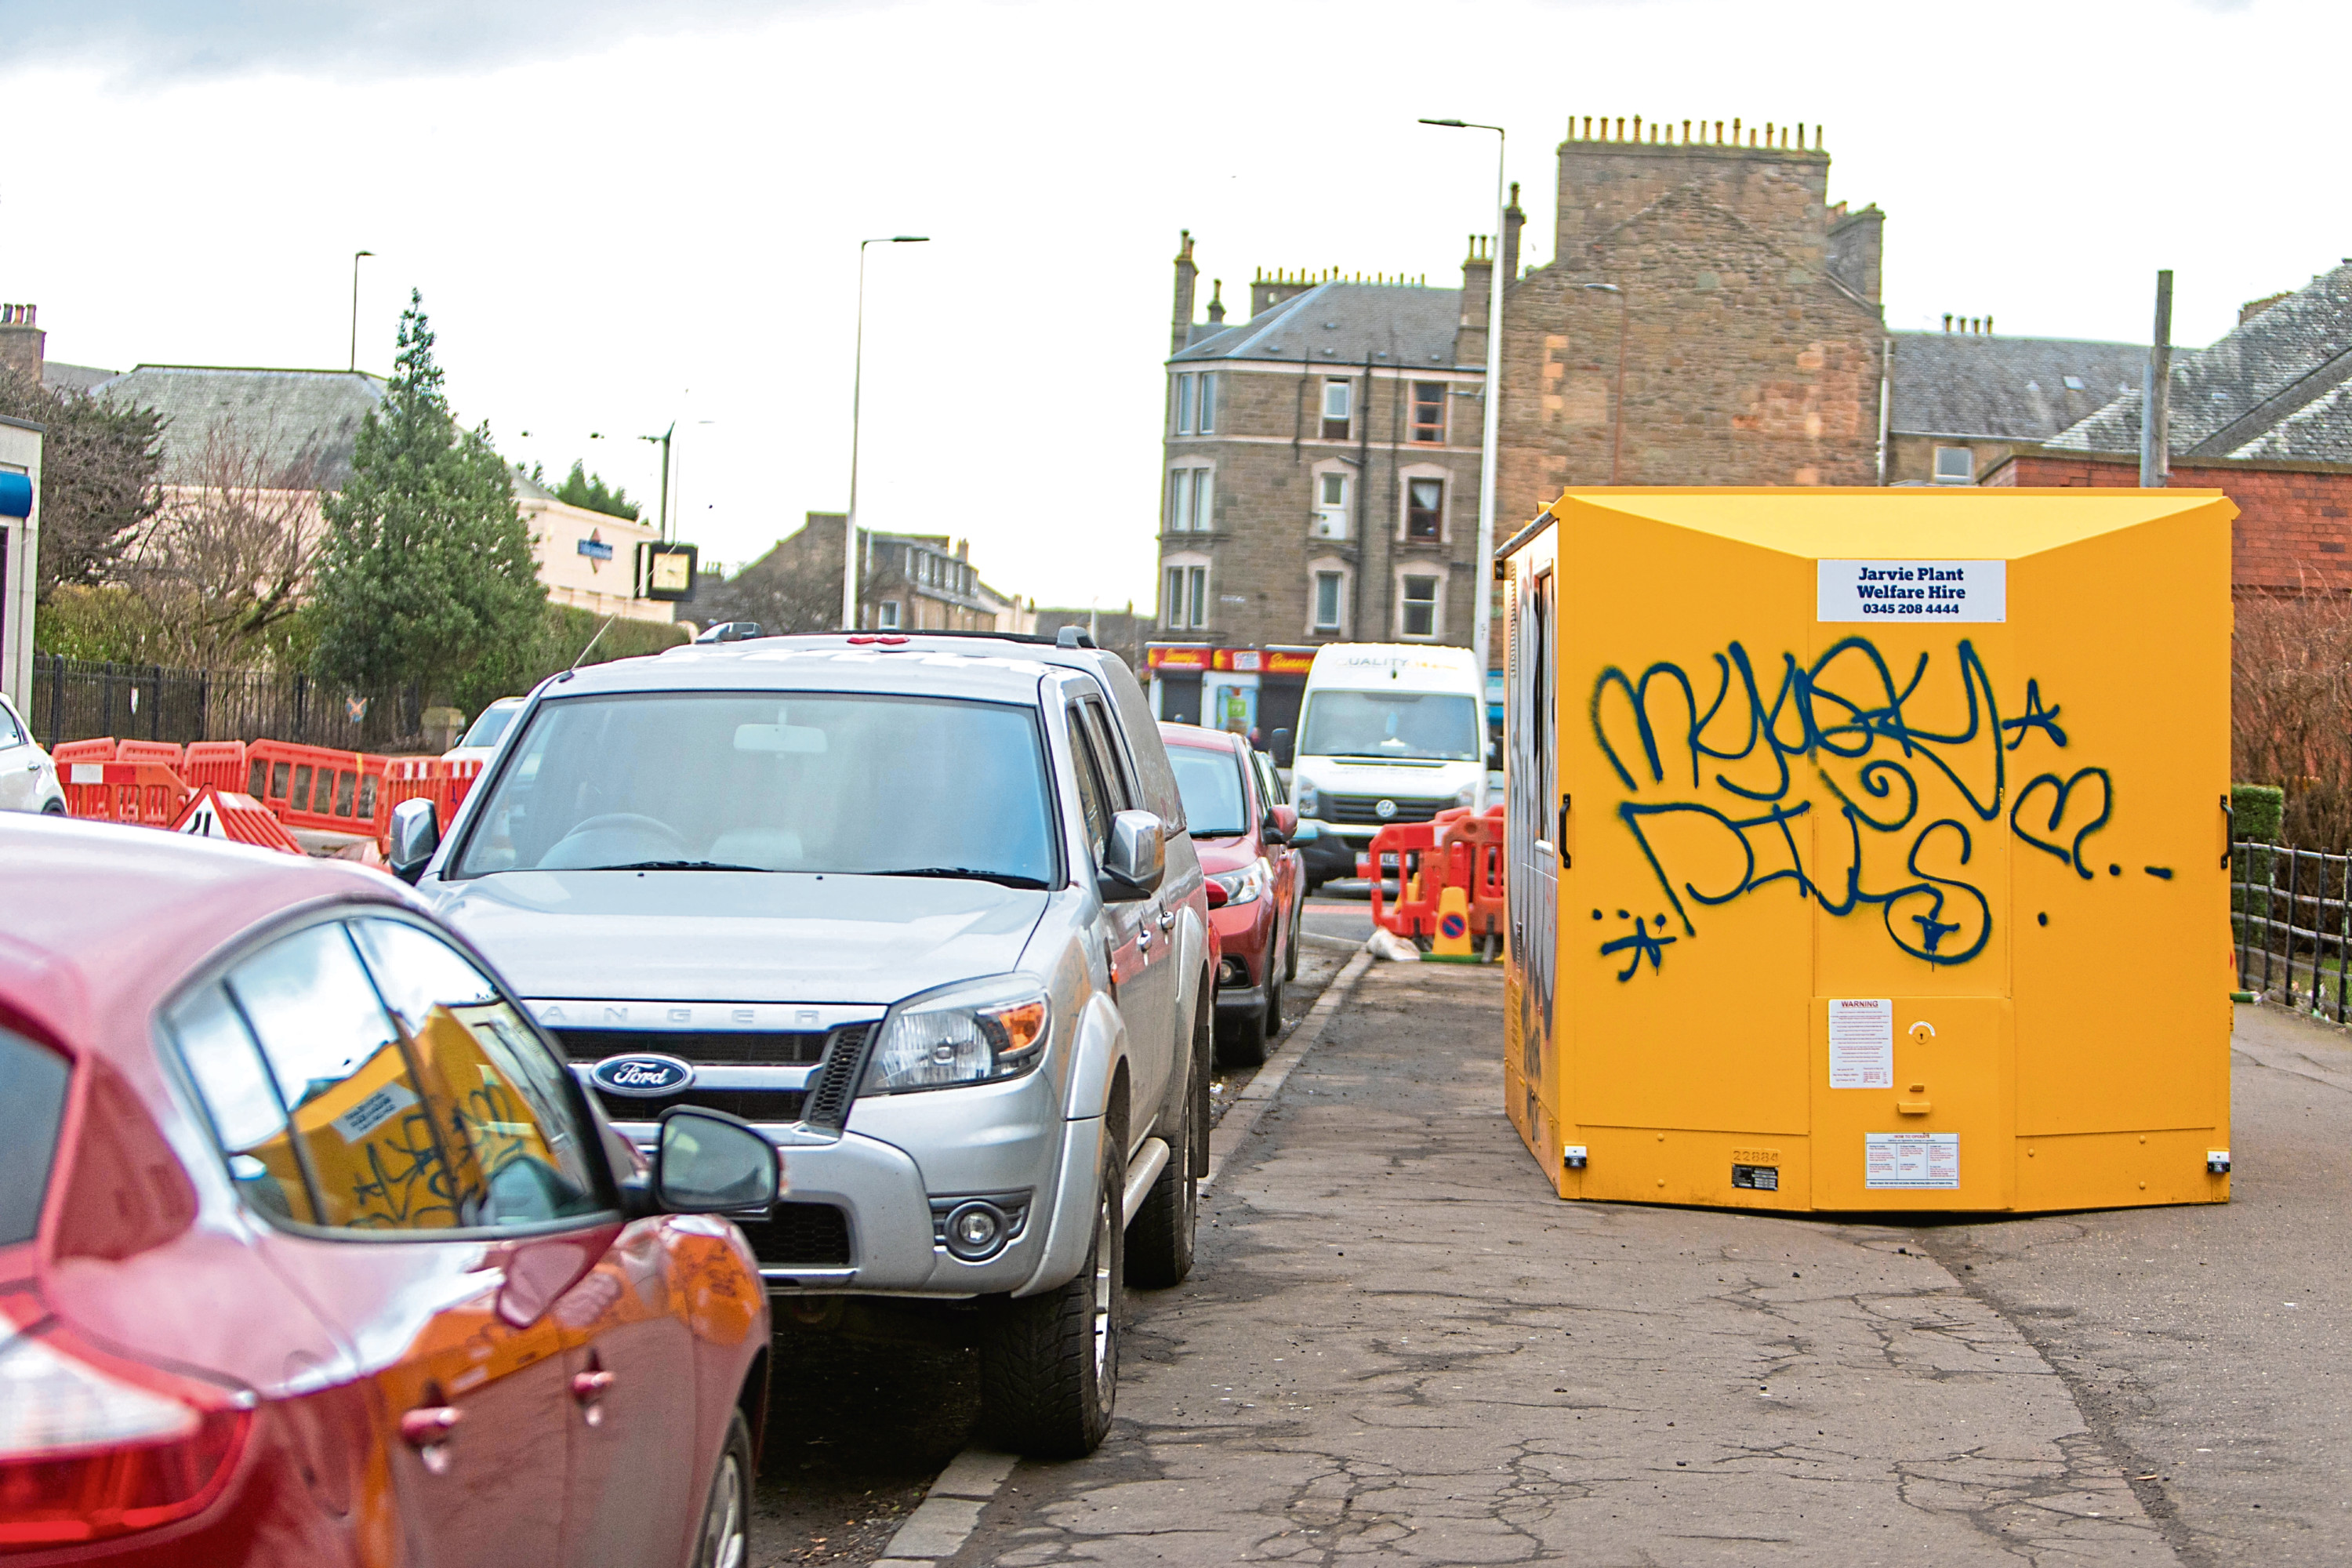 Cars parked on the pavements along with ongoing roadworks have left the area hazardous for pedestrians